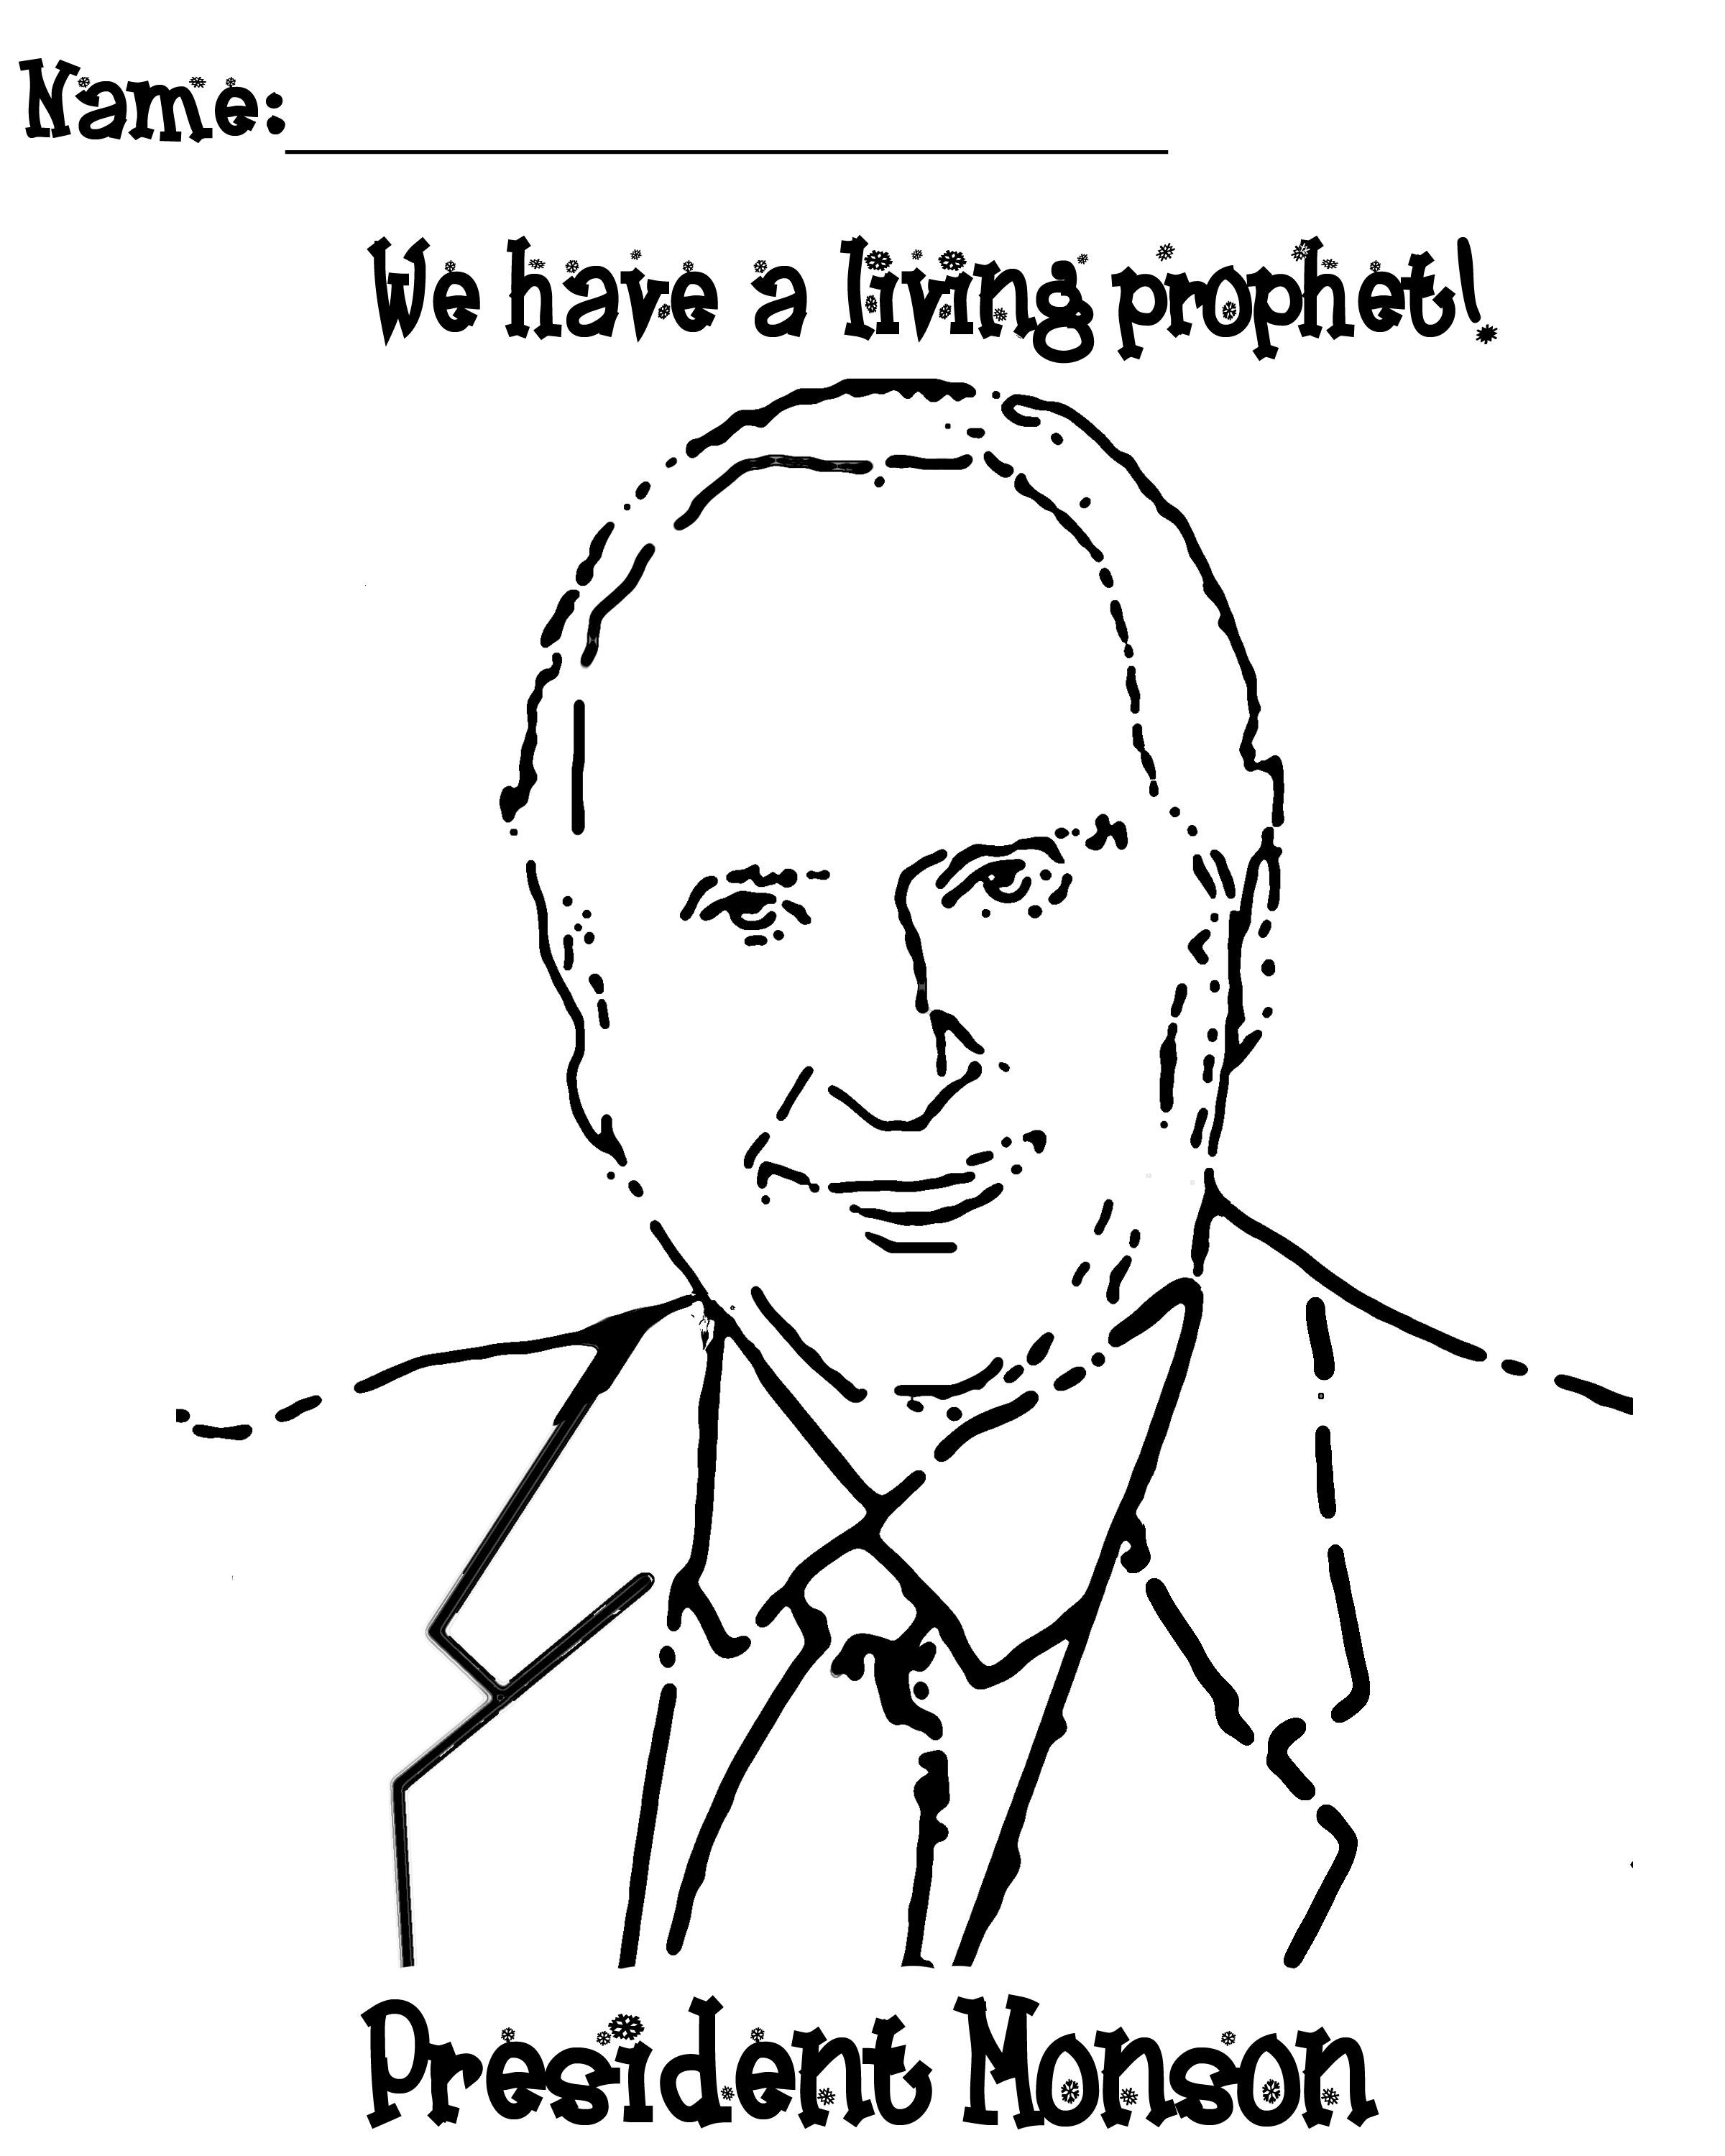 Free coloring pages lds - Free Lds Clipart To Color For Primary Children Ve Cleaned Up The Other Coloring Pages